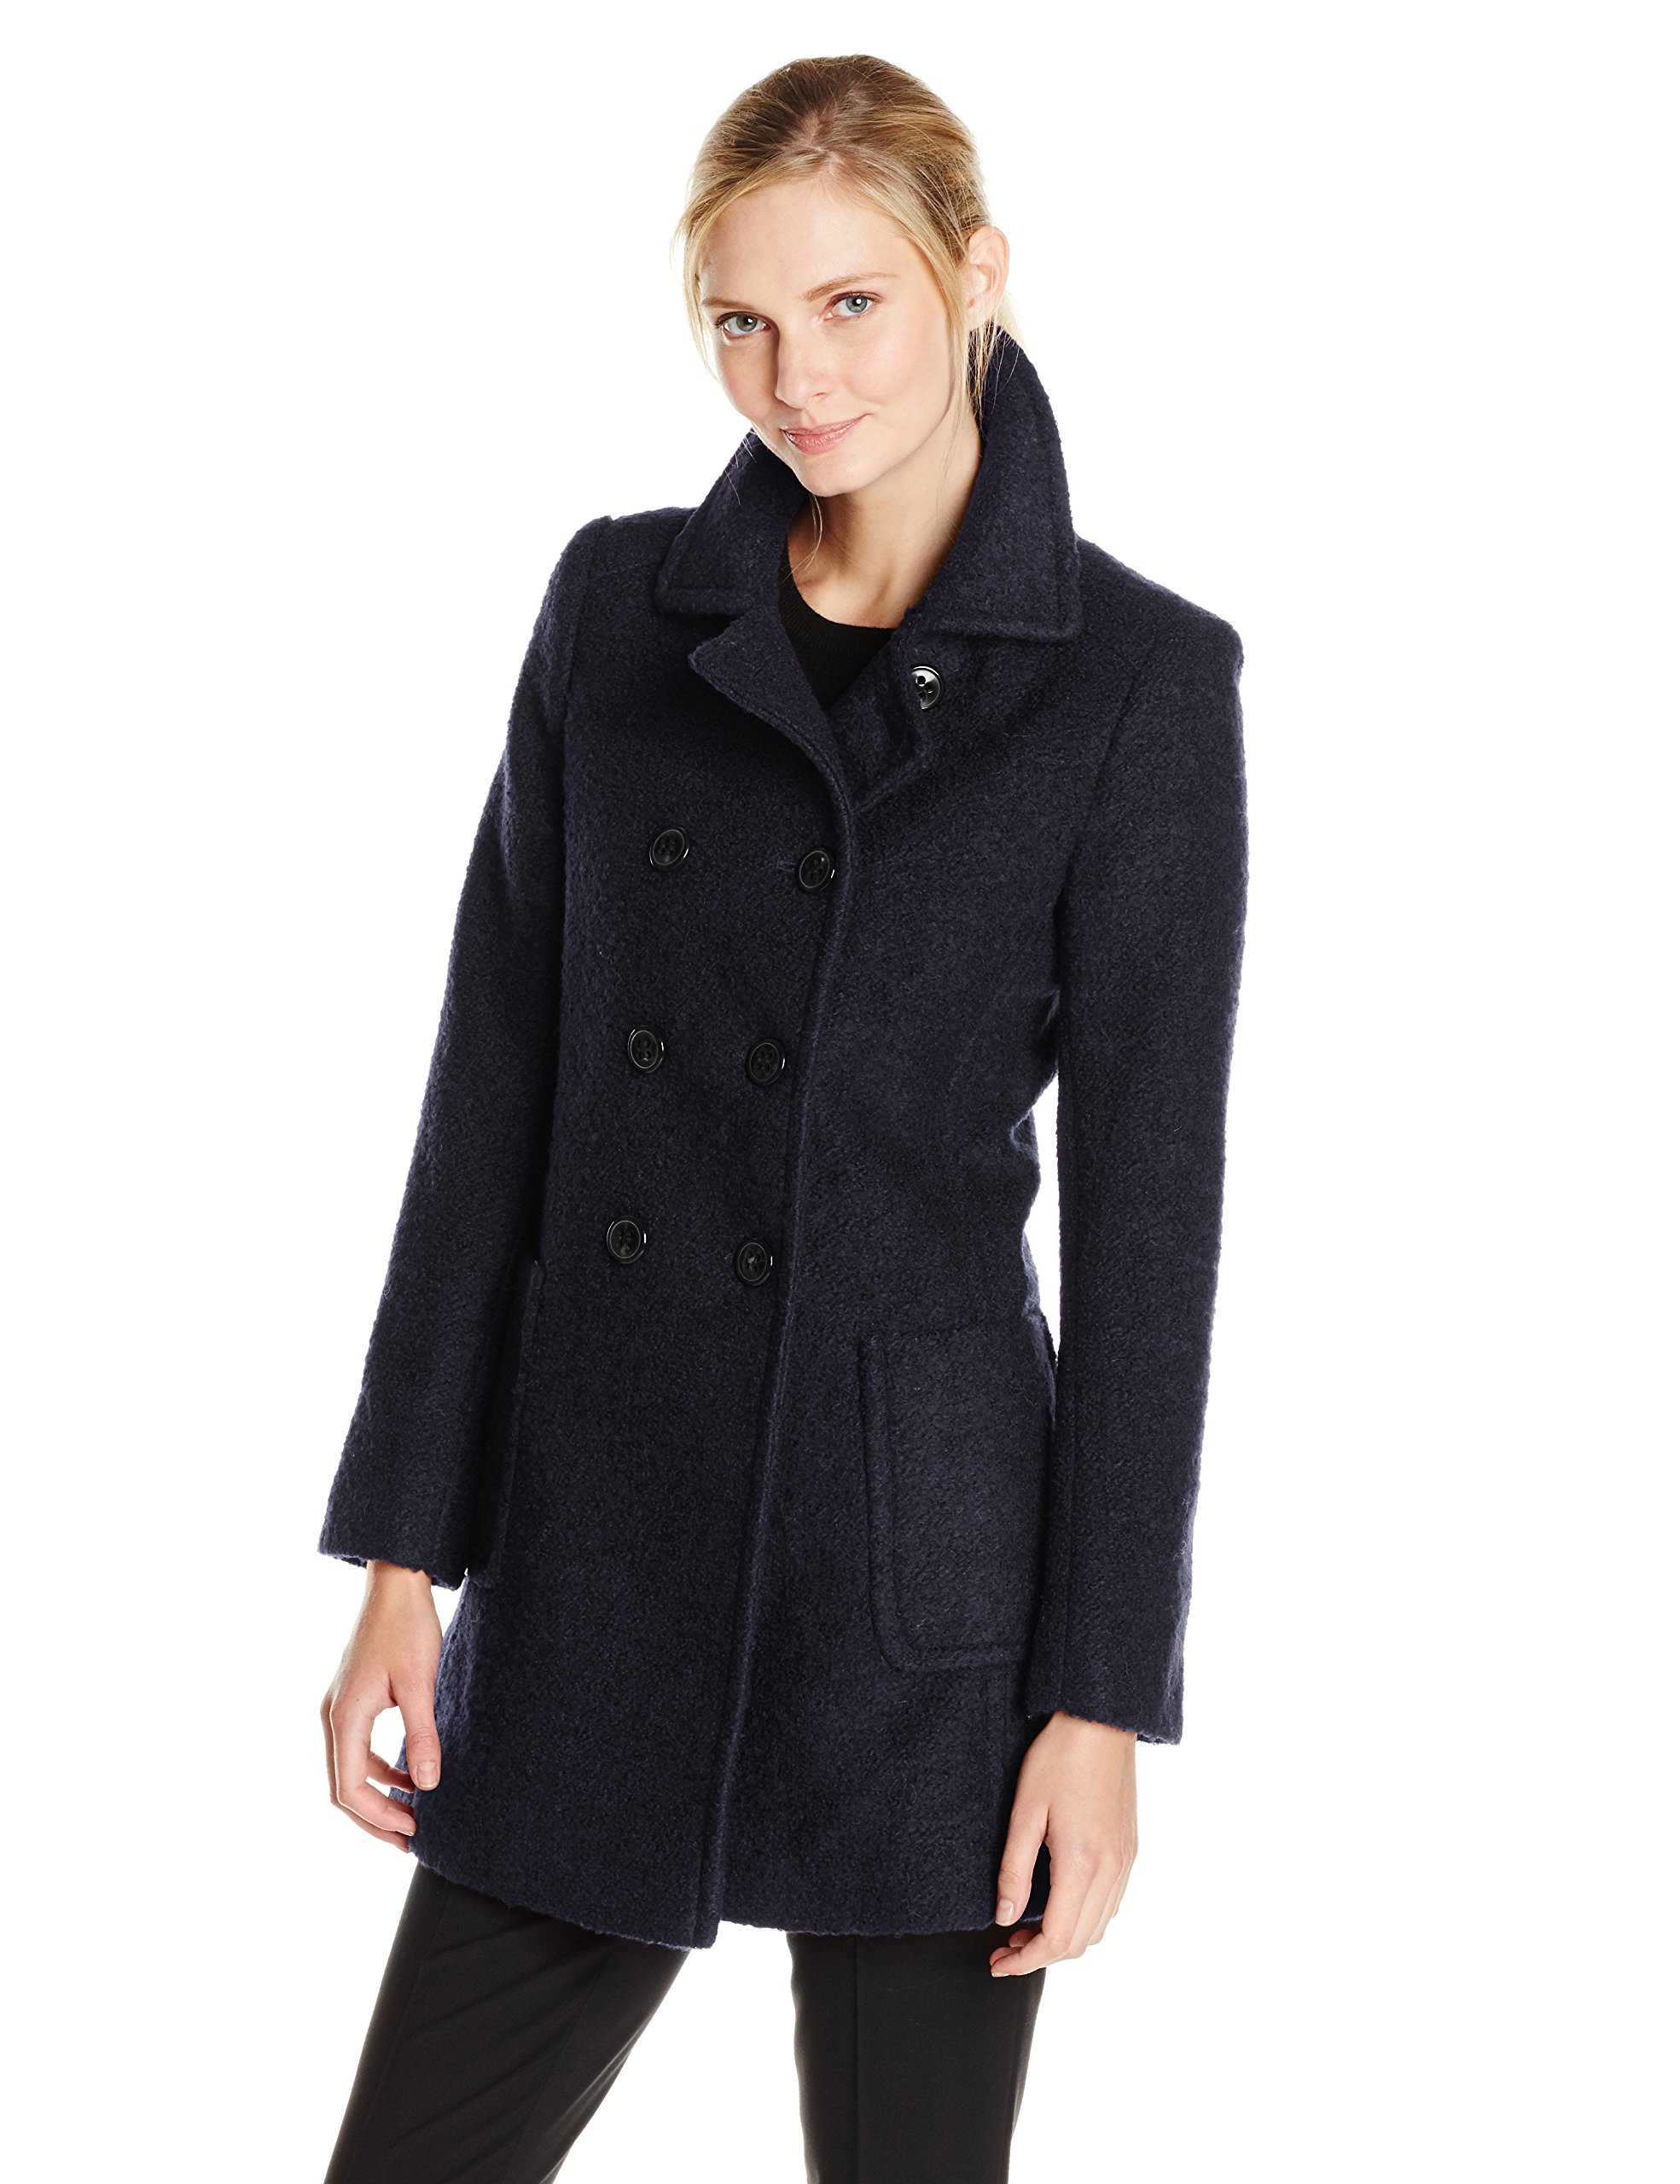 T Tahari Women's Double Breasted Wool Boucle Coat, Navy, X-Small